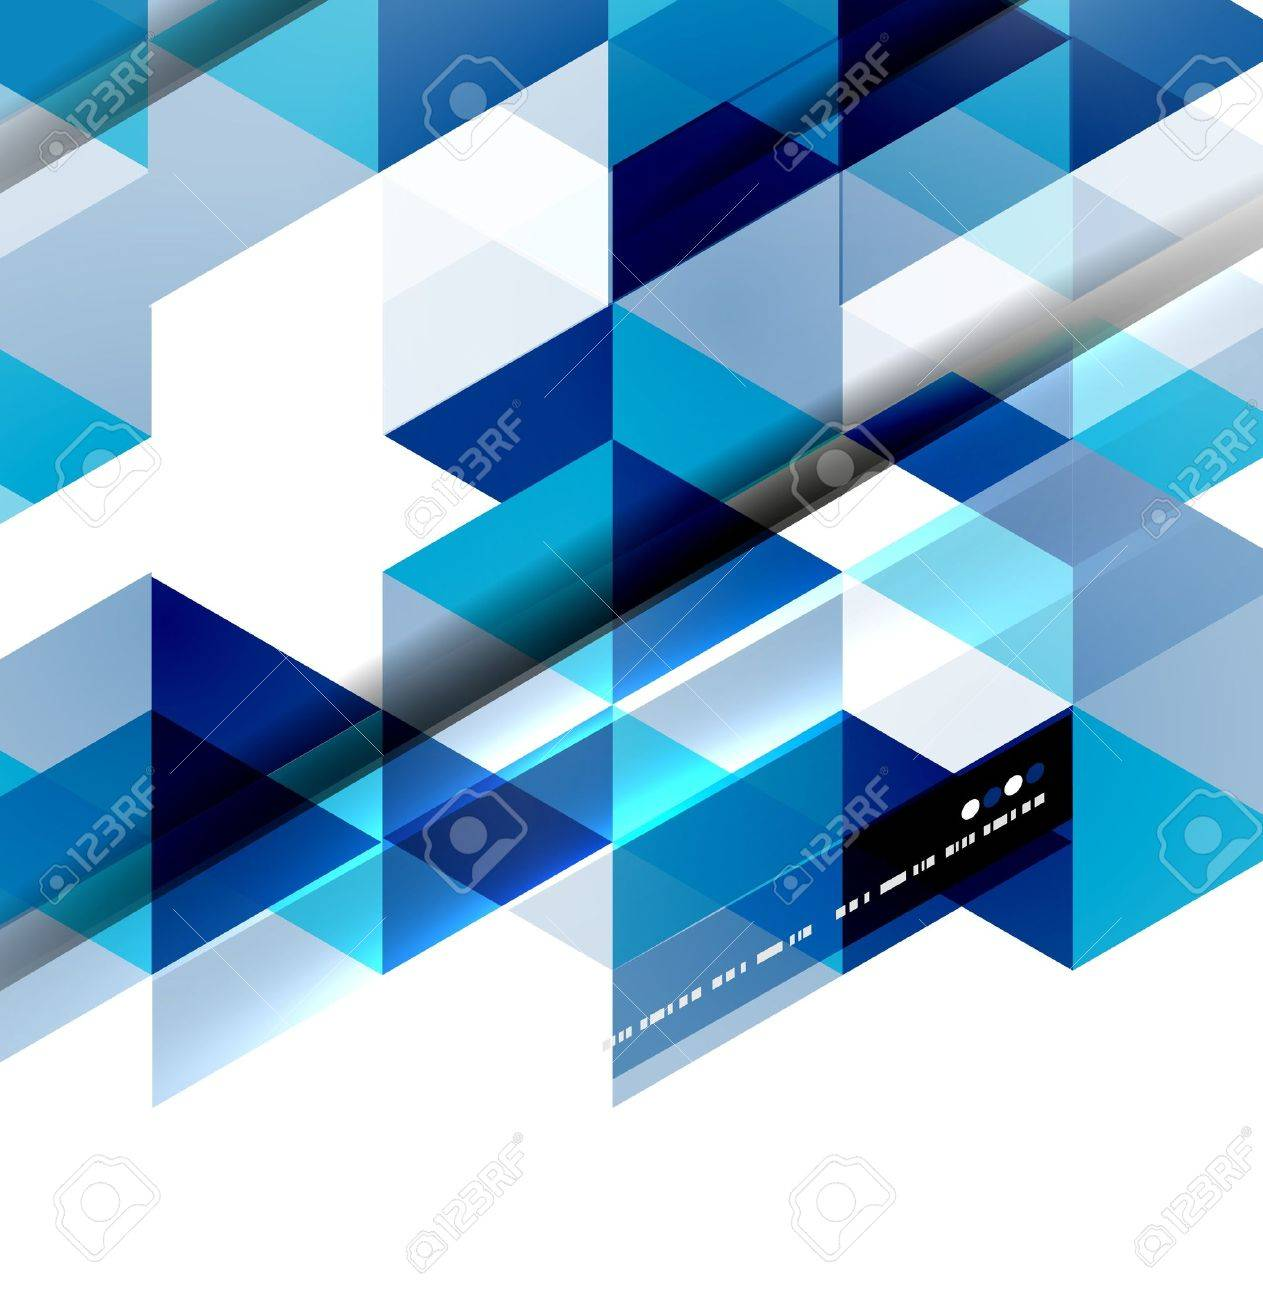 Abstract straight lines vector background Stock Vector - 20728261